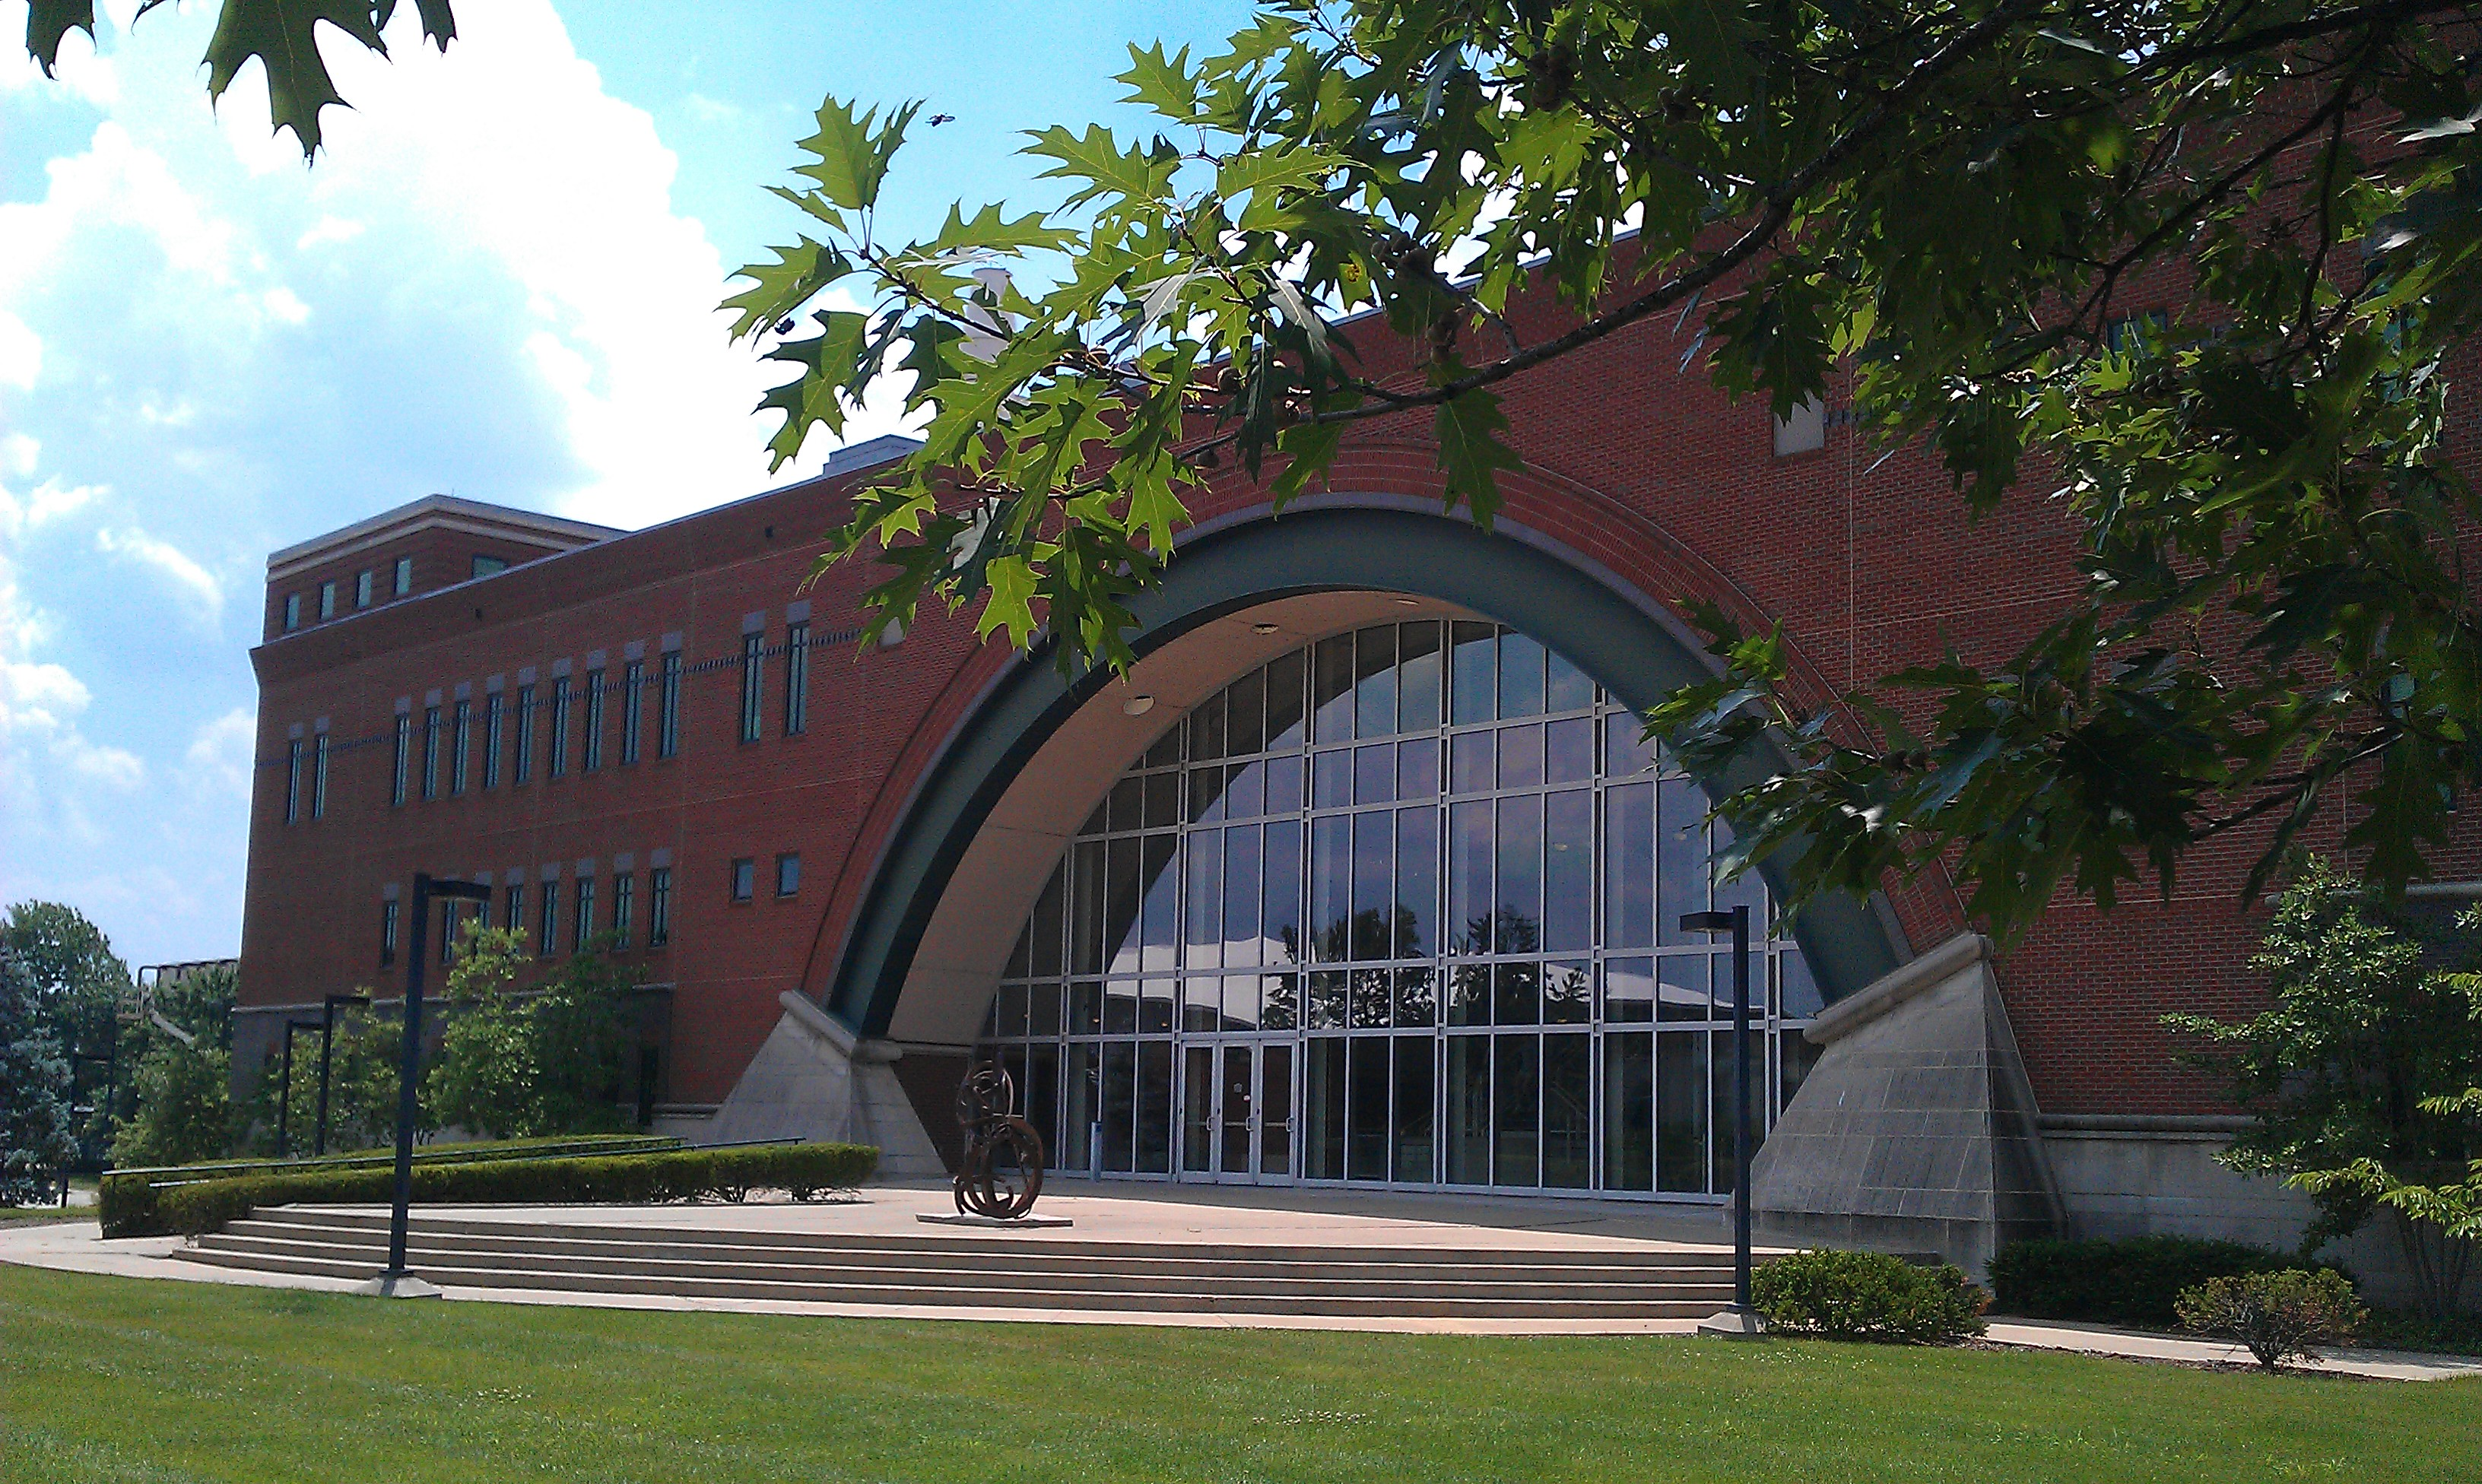 Lutz Hall in the Summer